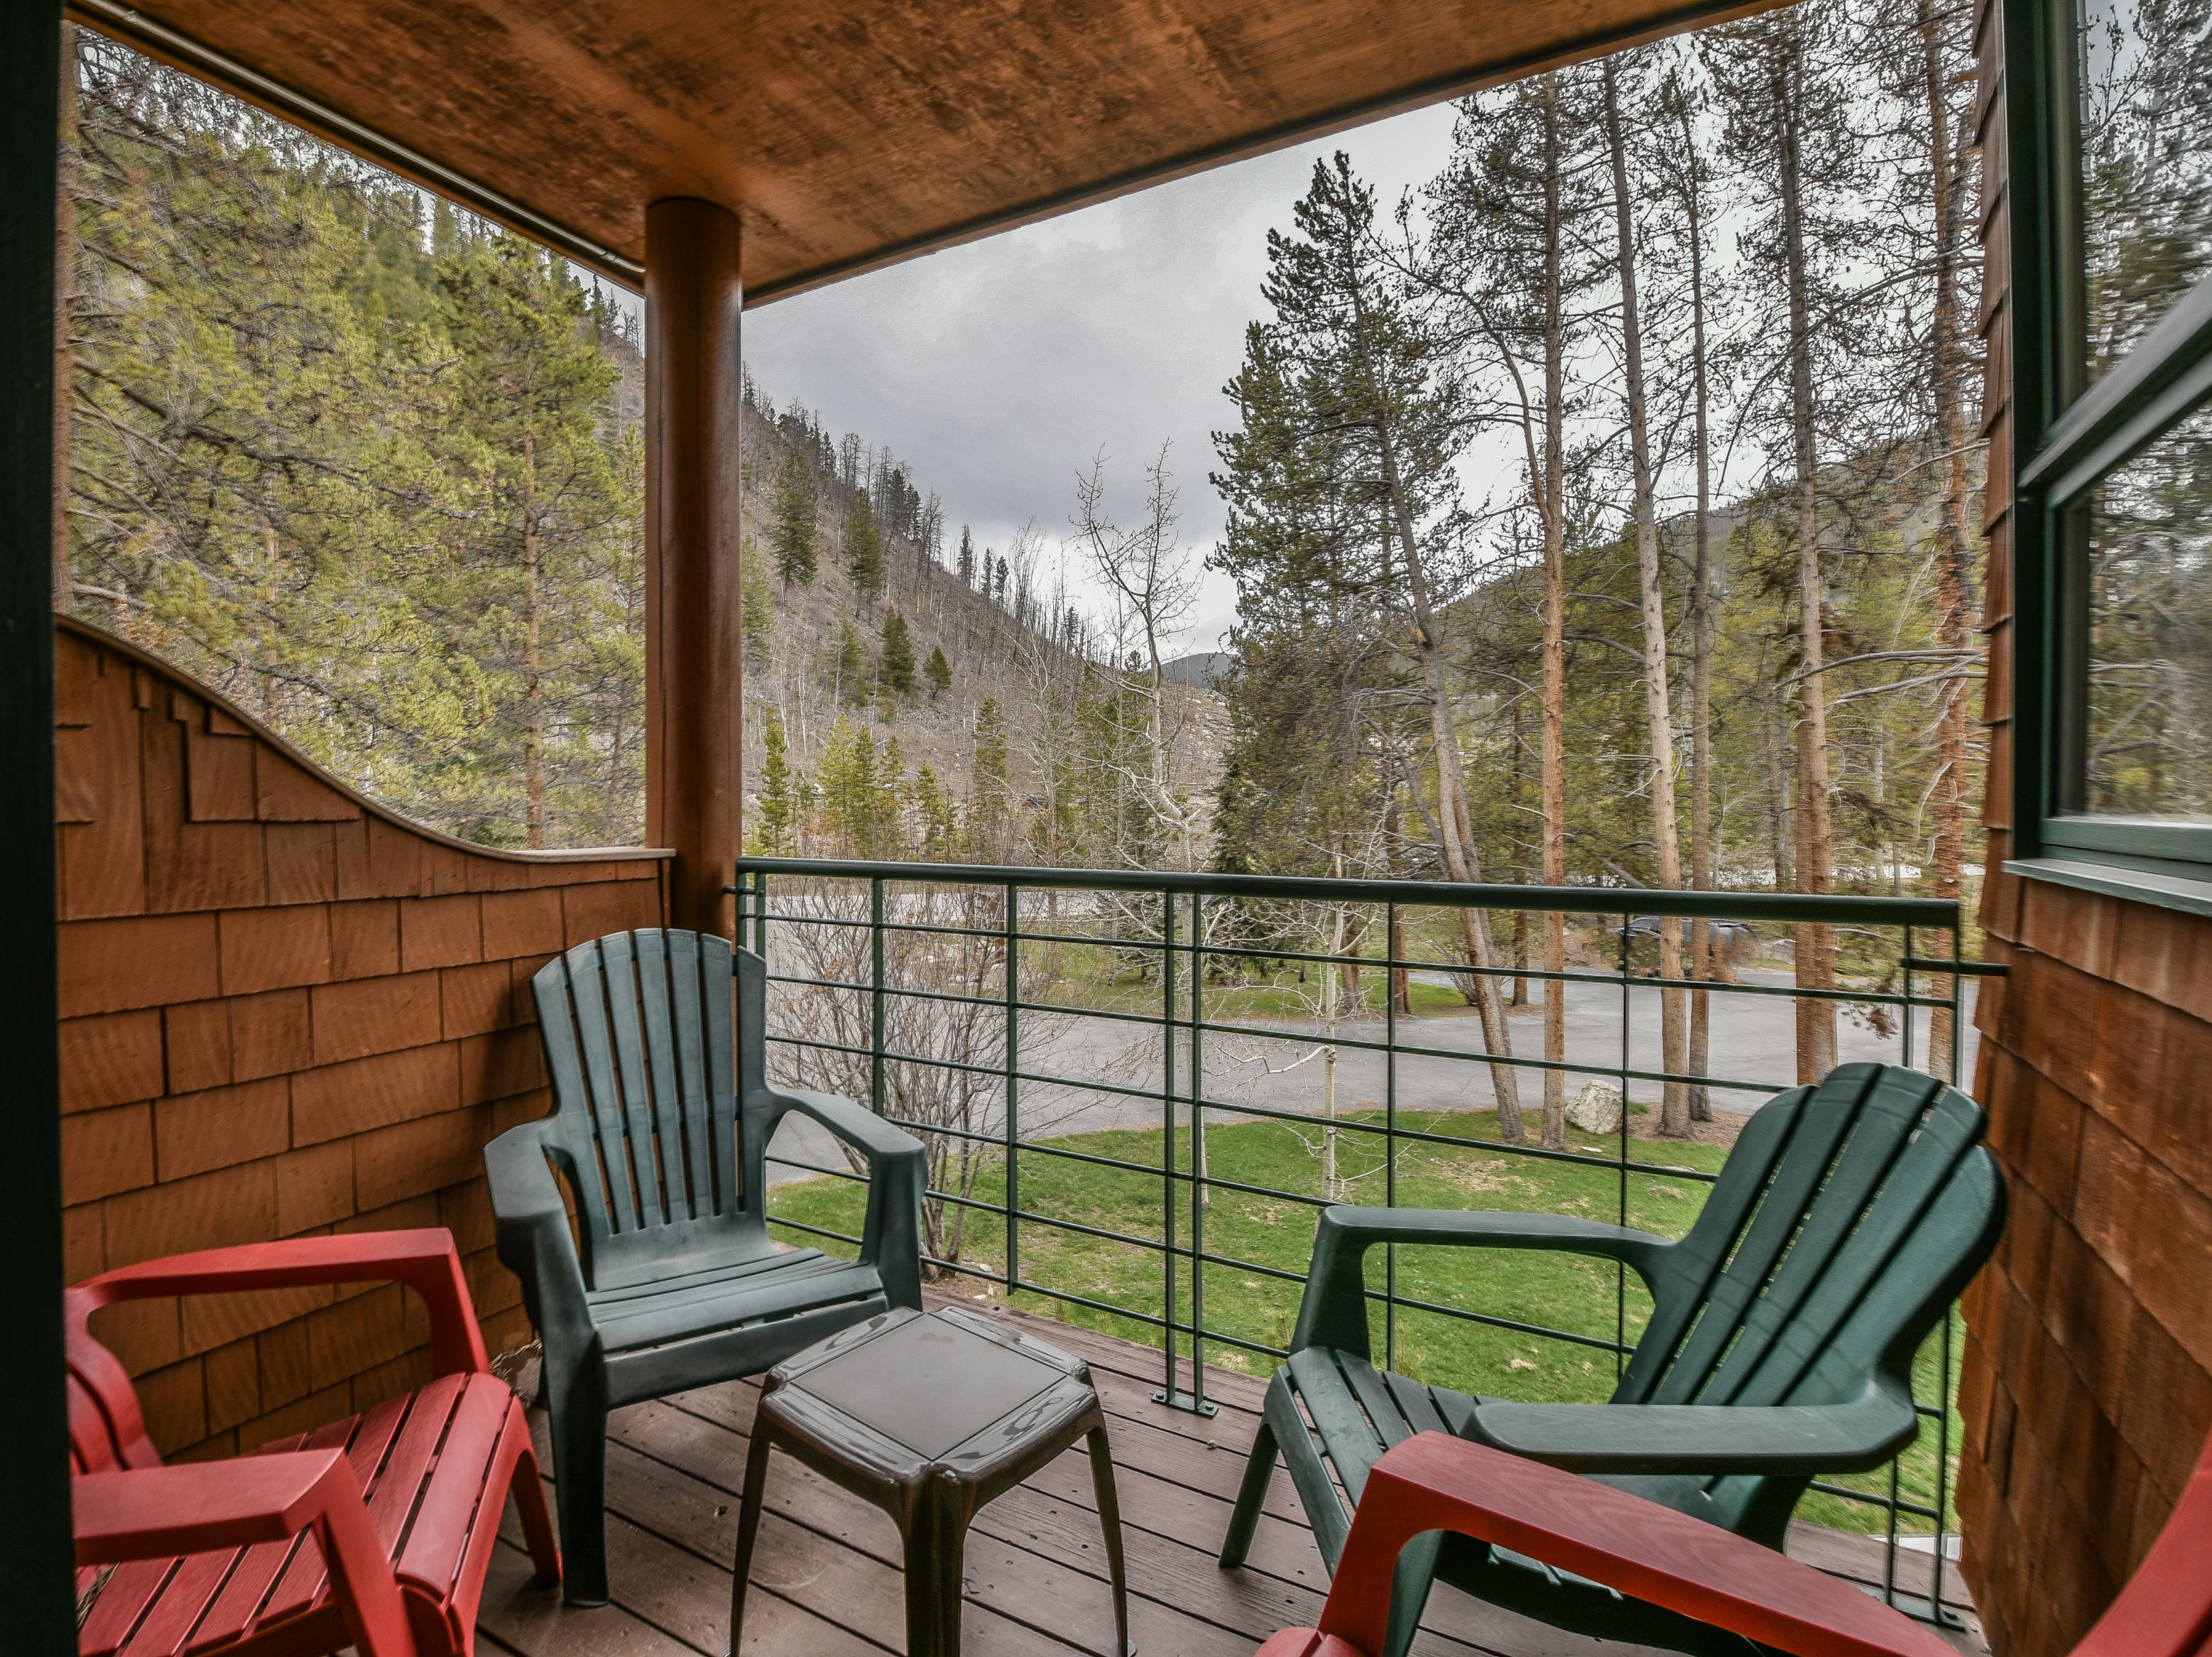 Porch with space to relax and watch the spectacular view